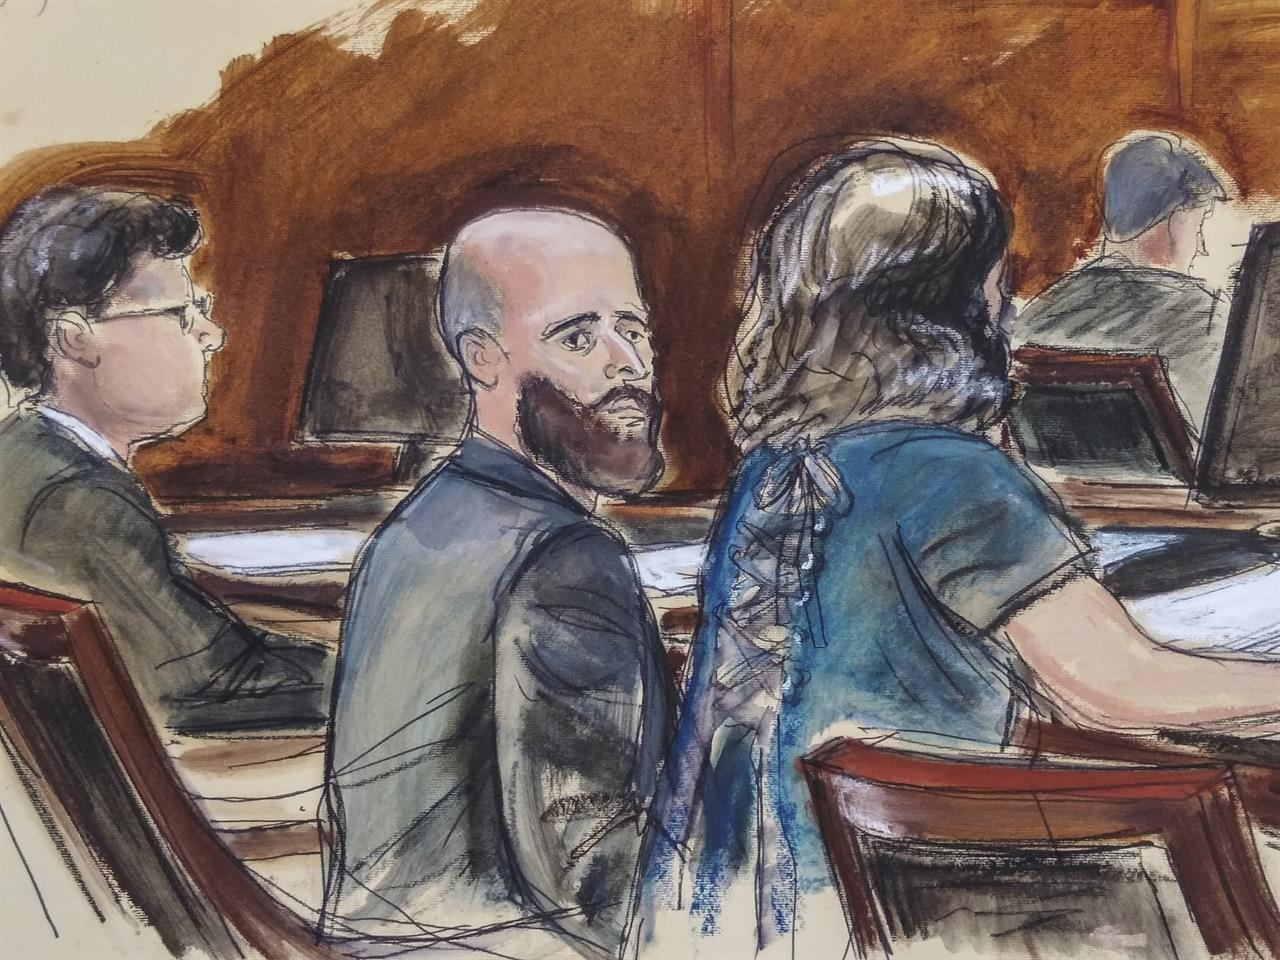 """In this Wednesday March 4, 2020 courtroom sketch Joshua Schulte, center, is seated at the defense table flanked by his attorneys during jury deliberations in New York. Joshua Schulte, a former CIA software engineer charged with leaking government secrets to WikiLeaks says it's cruel and unusual punishment that he's awaiting trial in solitary confinement, housed in a vermin-infested cell of a jail unit where inmates are treated like """"caged animals."""" In court papers Tuesday, Jan. 19, 2021 Schulte maintained he is held in conditions """"below that of impoverished persons living in third world countries."""" (Elizabeth Williams via AP)"""